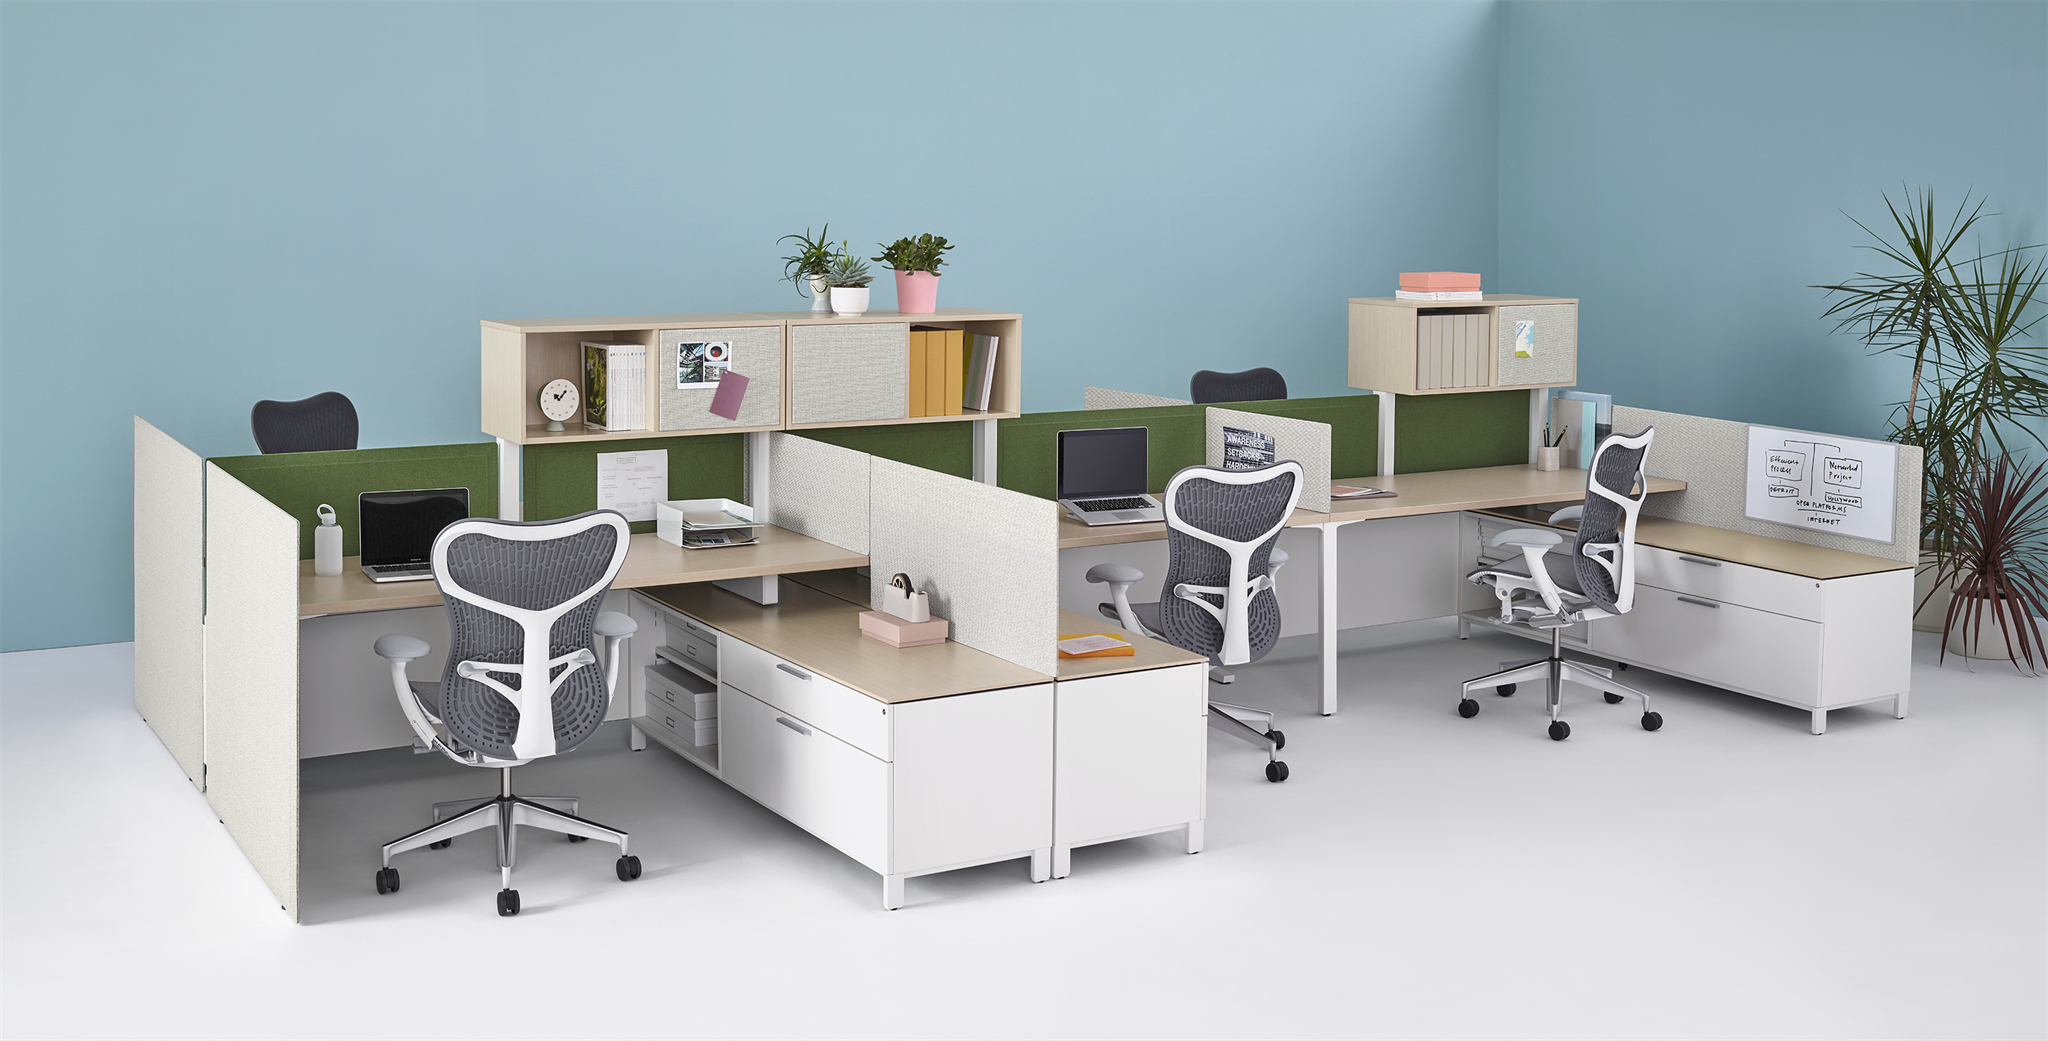 Image result for place environment with office furniture